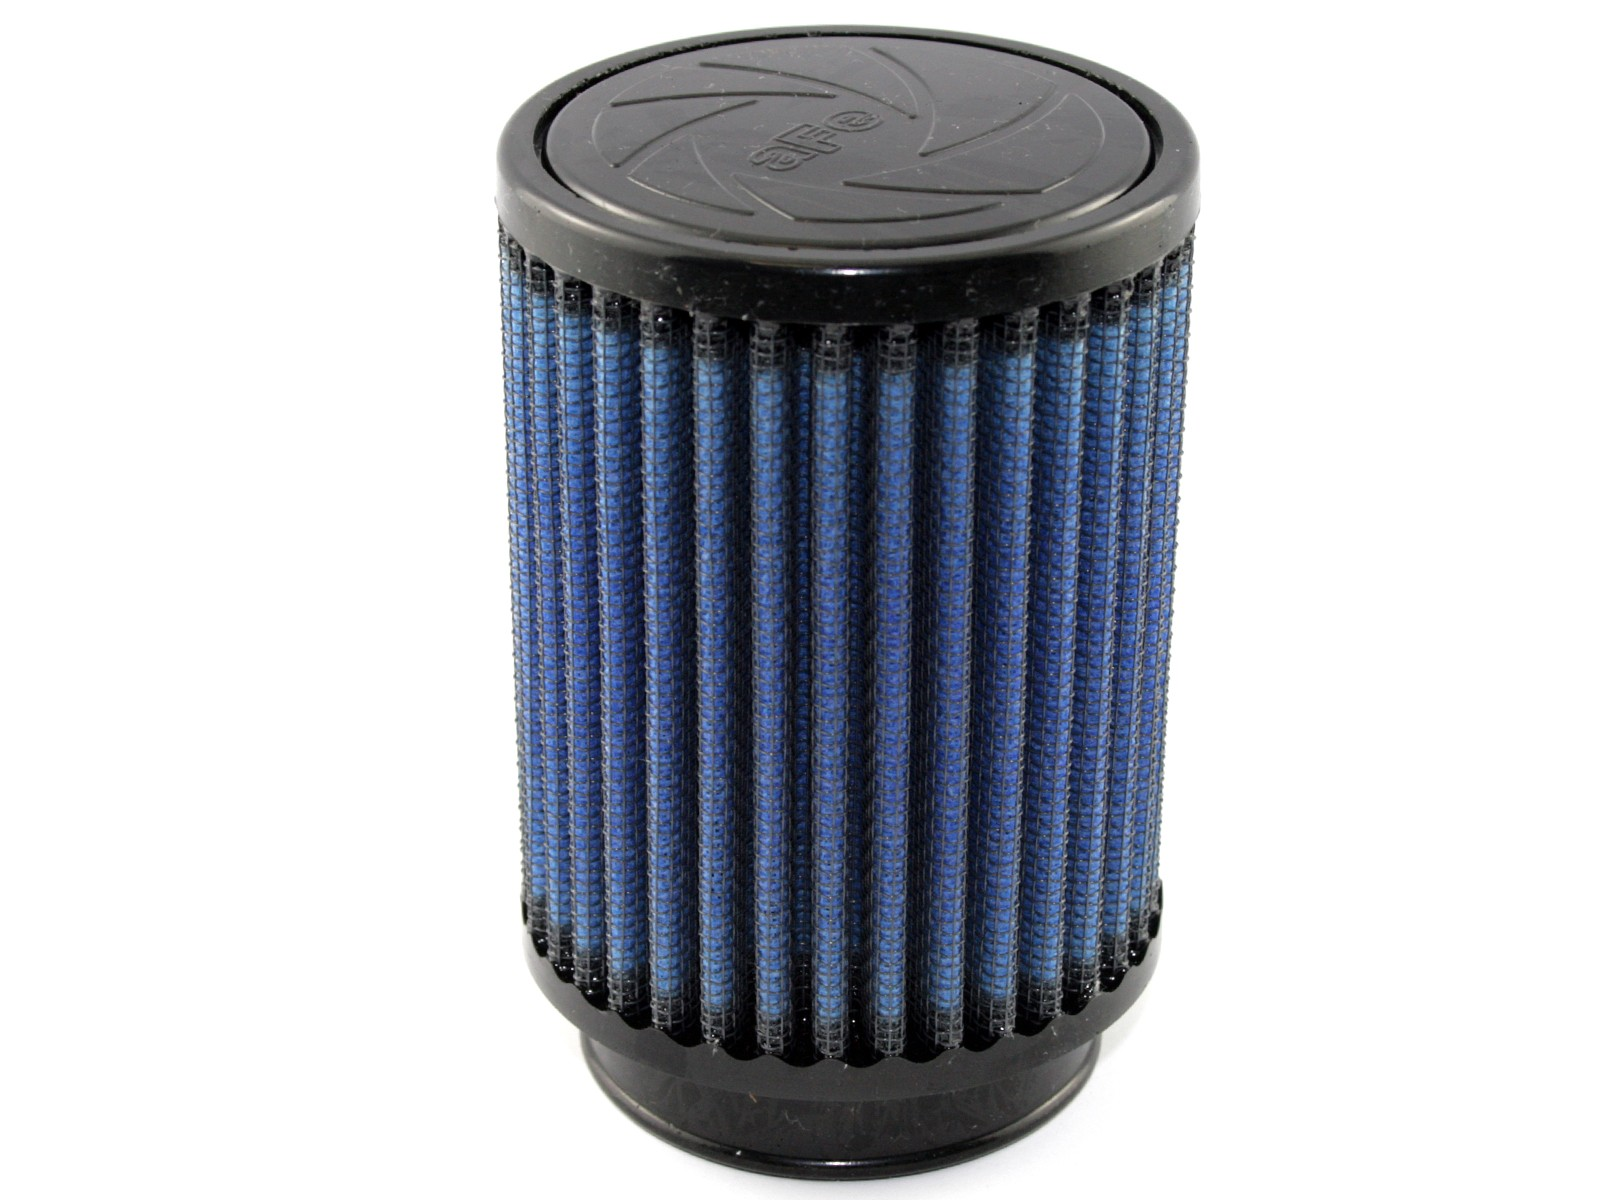 aFe POWER 24-20504 Magnum FLOW Pro 5R Air Filter